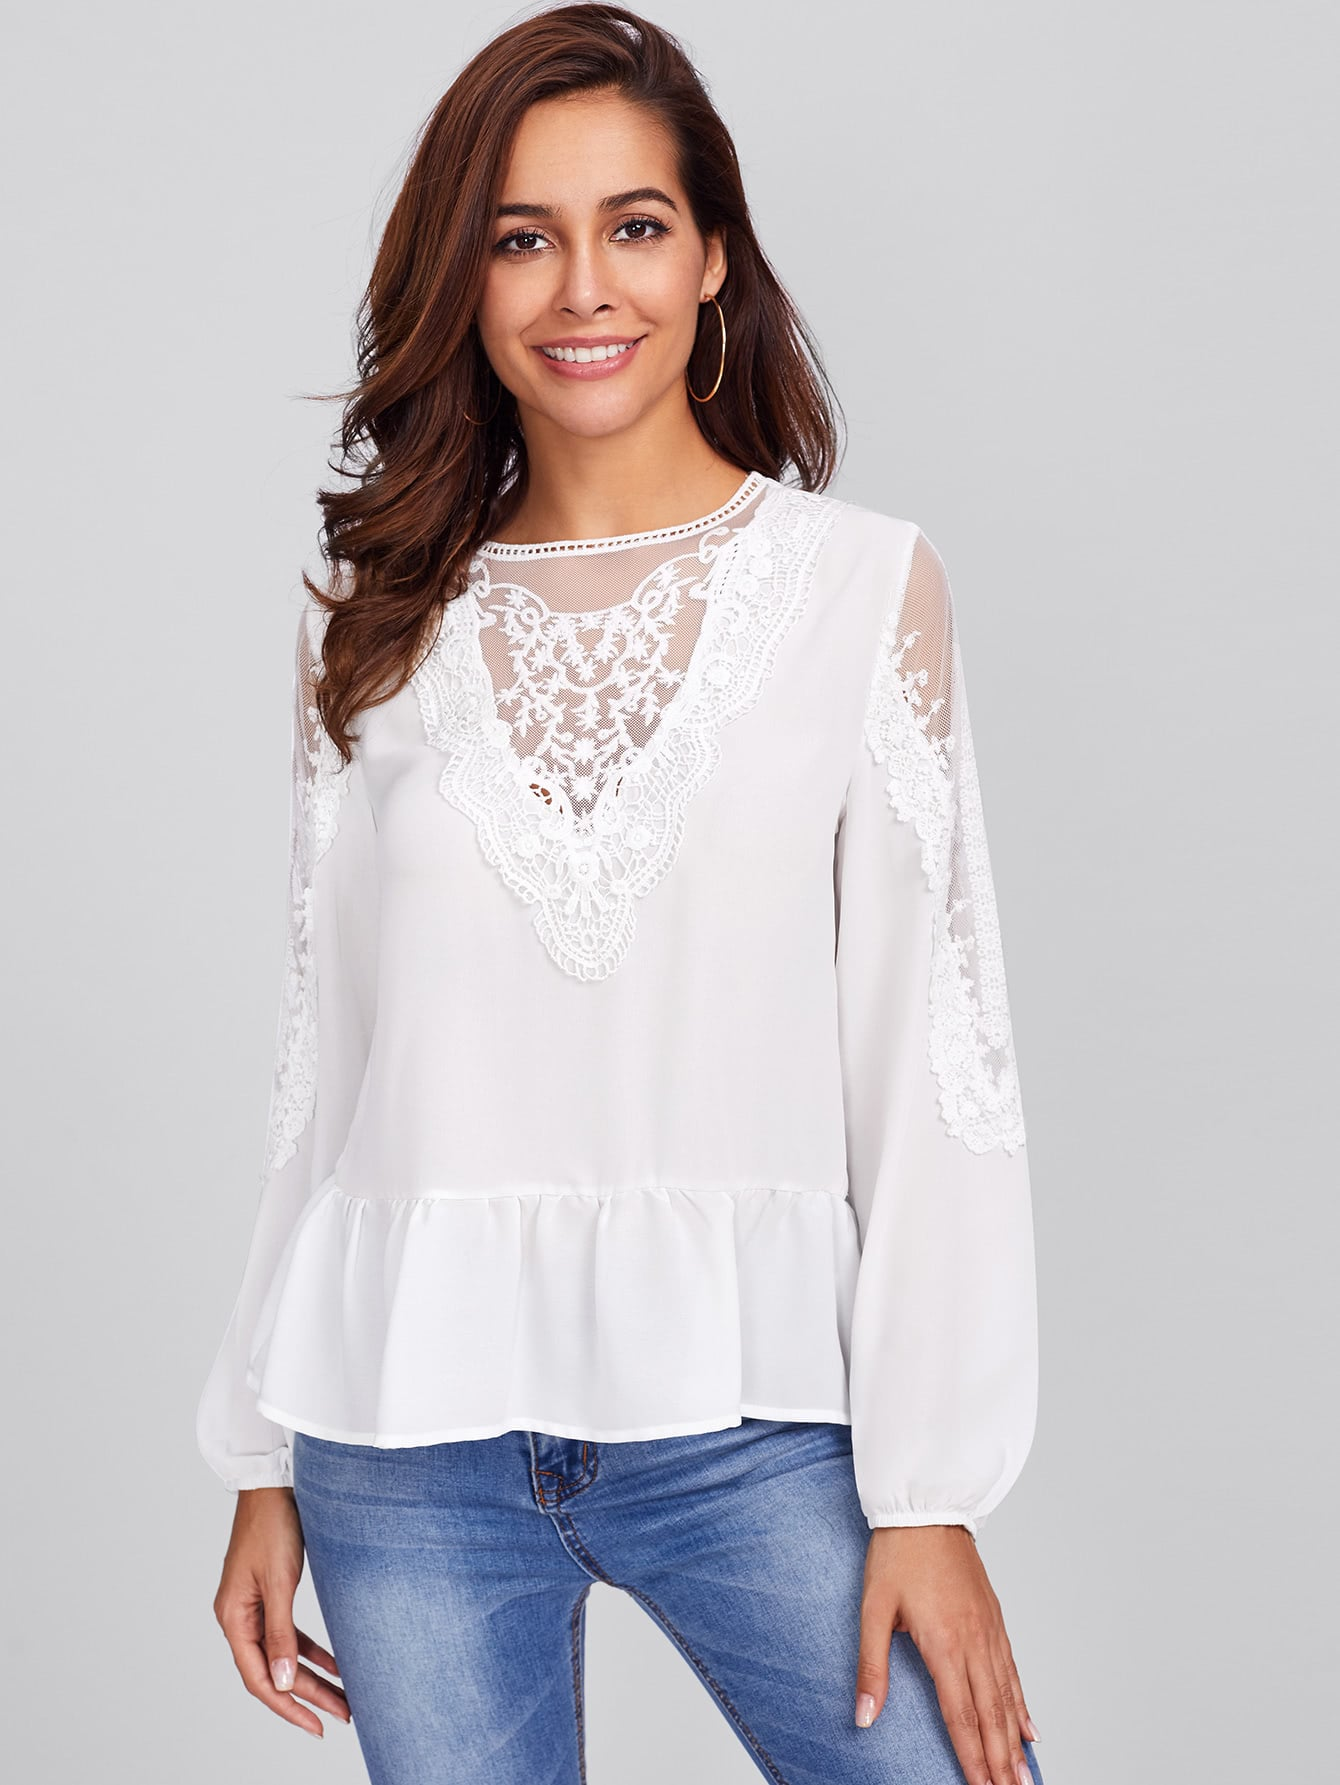 Embroidered Mesh Panel Lace Detail Frilled Top frill detail crochet insert embroidered mesh top